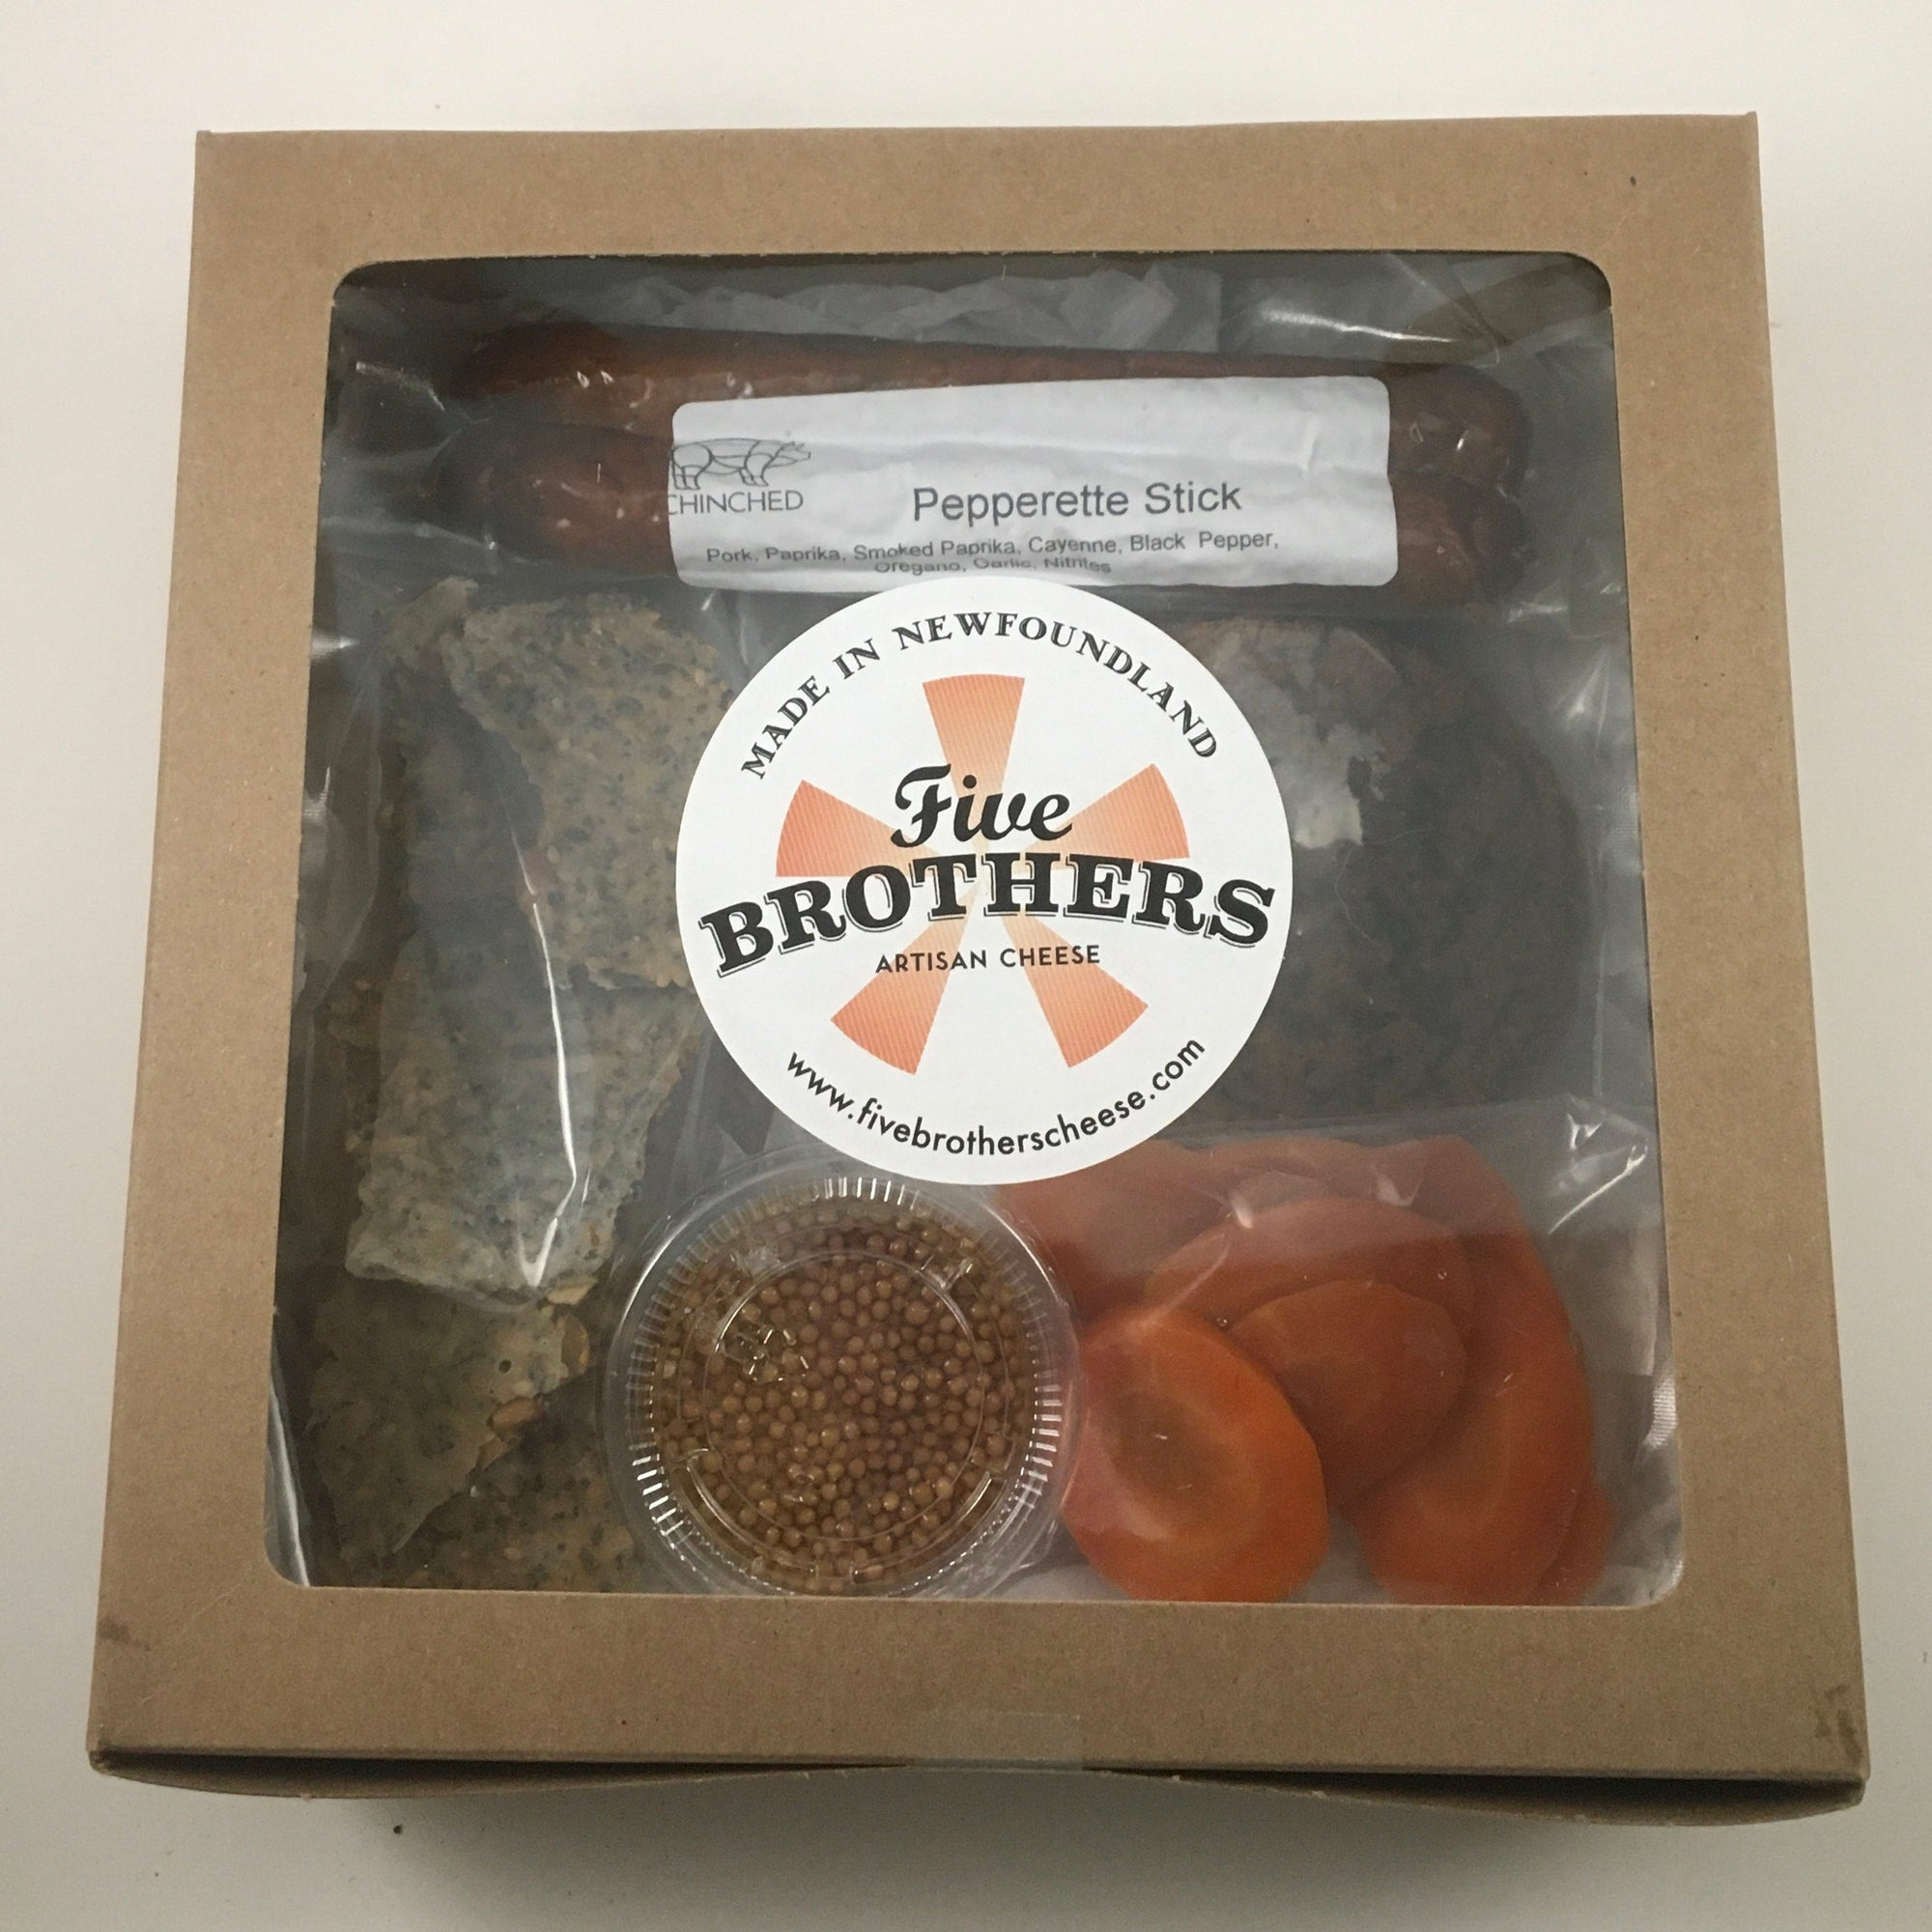 Chinched Meats and Rocket Bakery Bundle - Five Brothers Artisan Cheese Inc